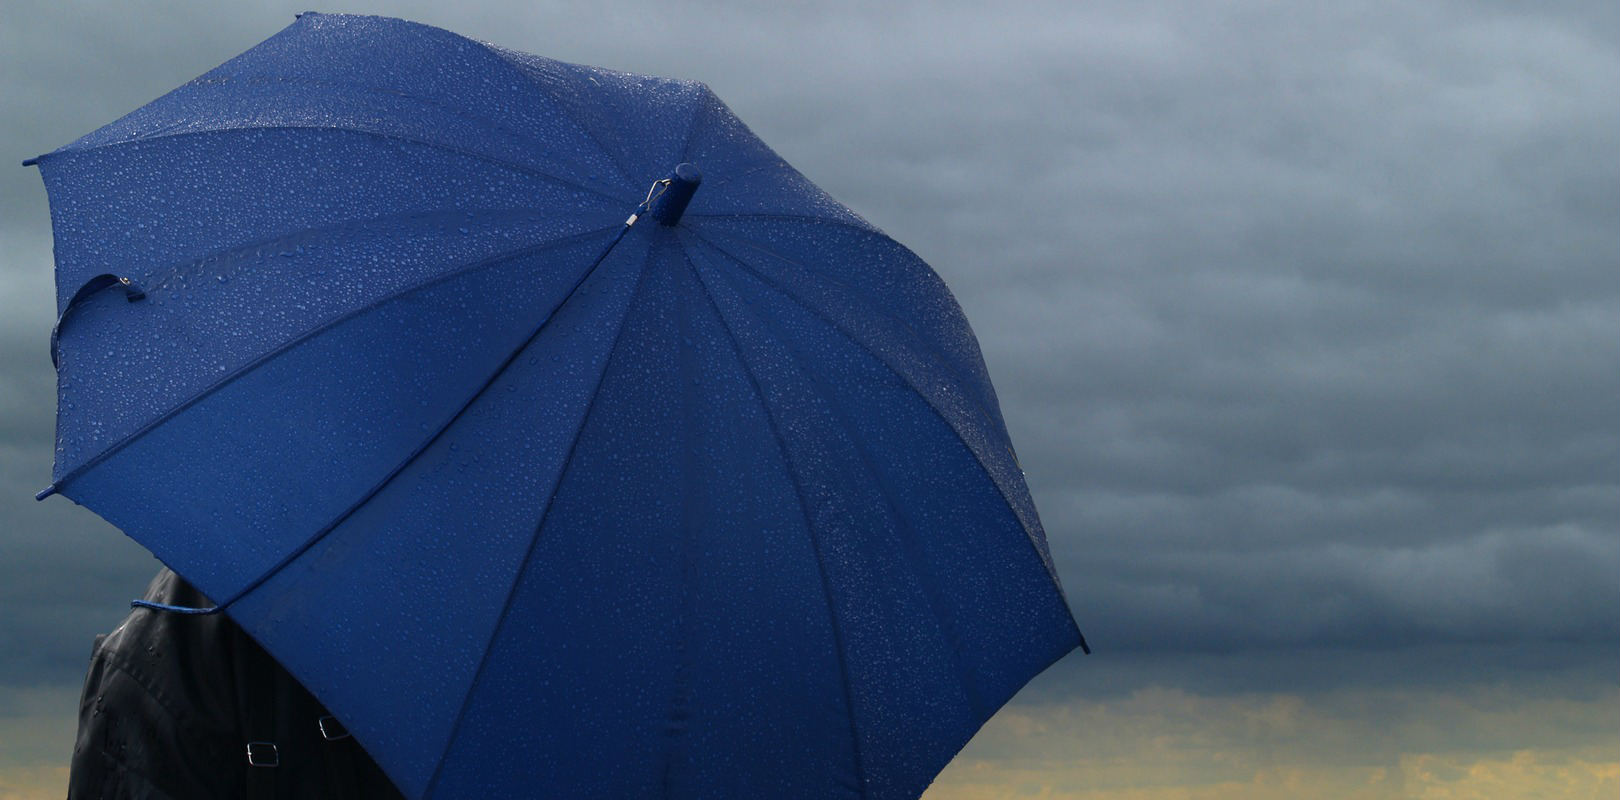 Umbrella representing business and legal protection